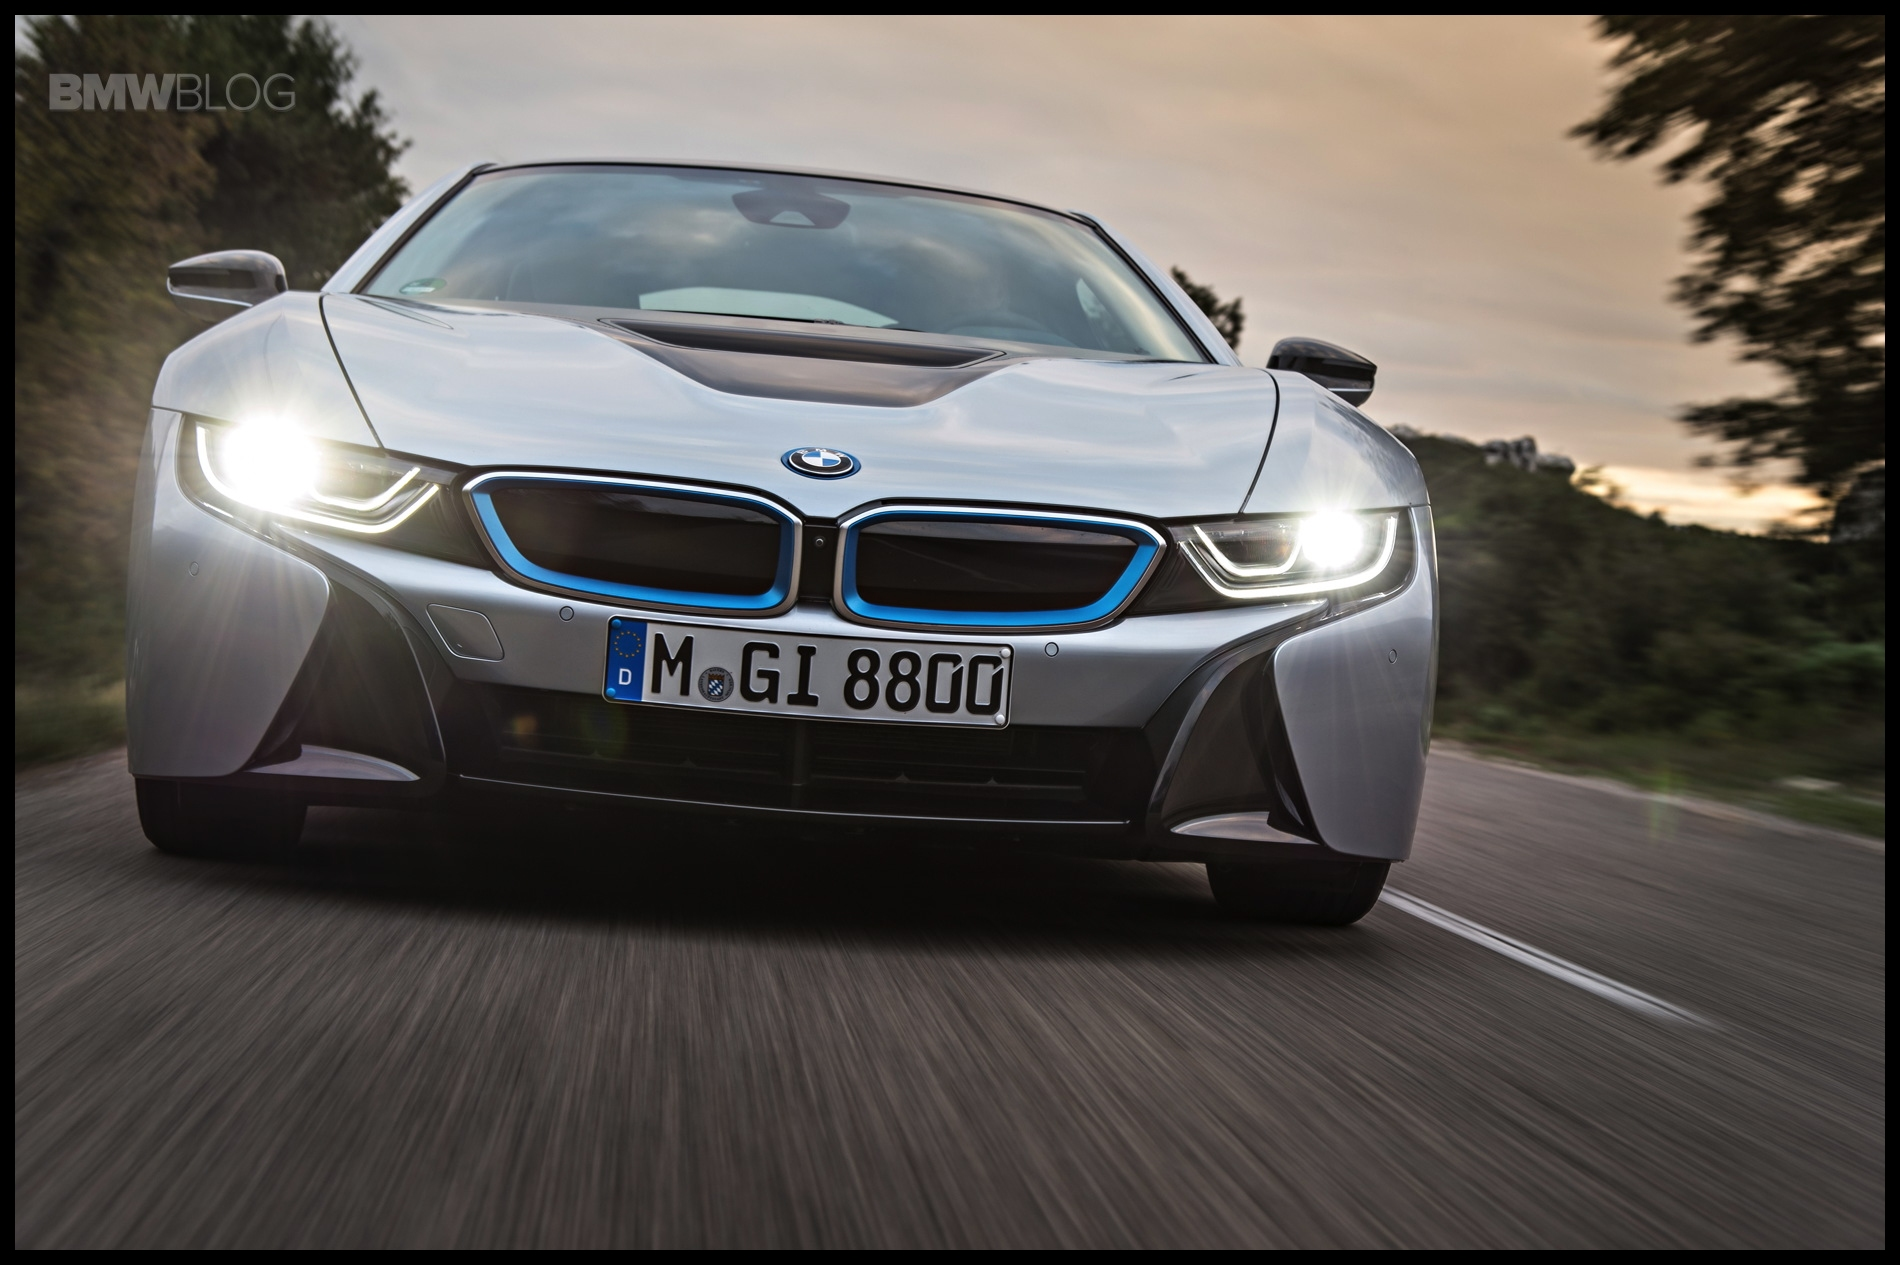 bmw i8 laser lights images 07 750x499